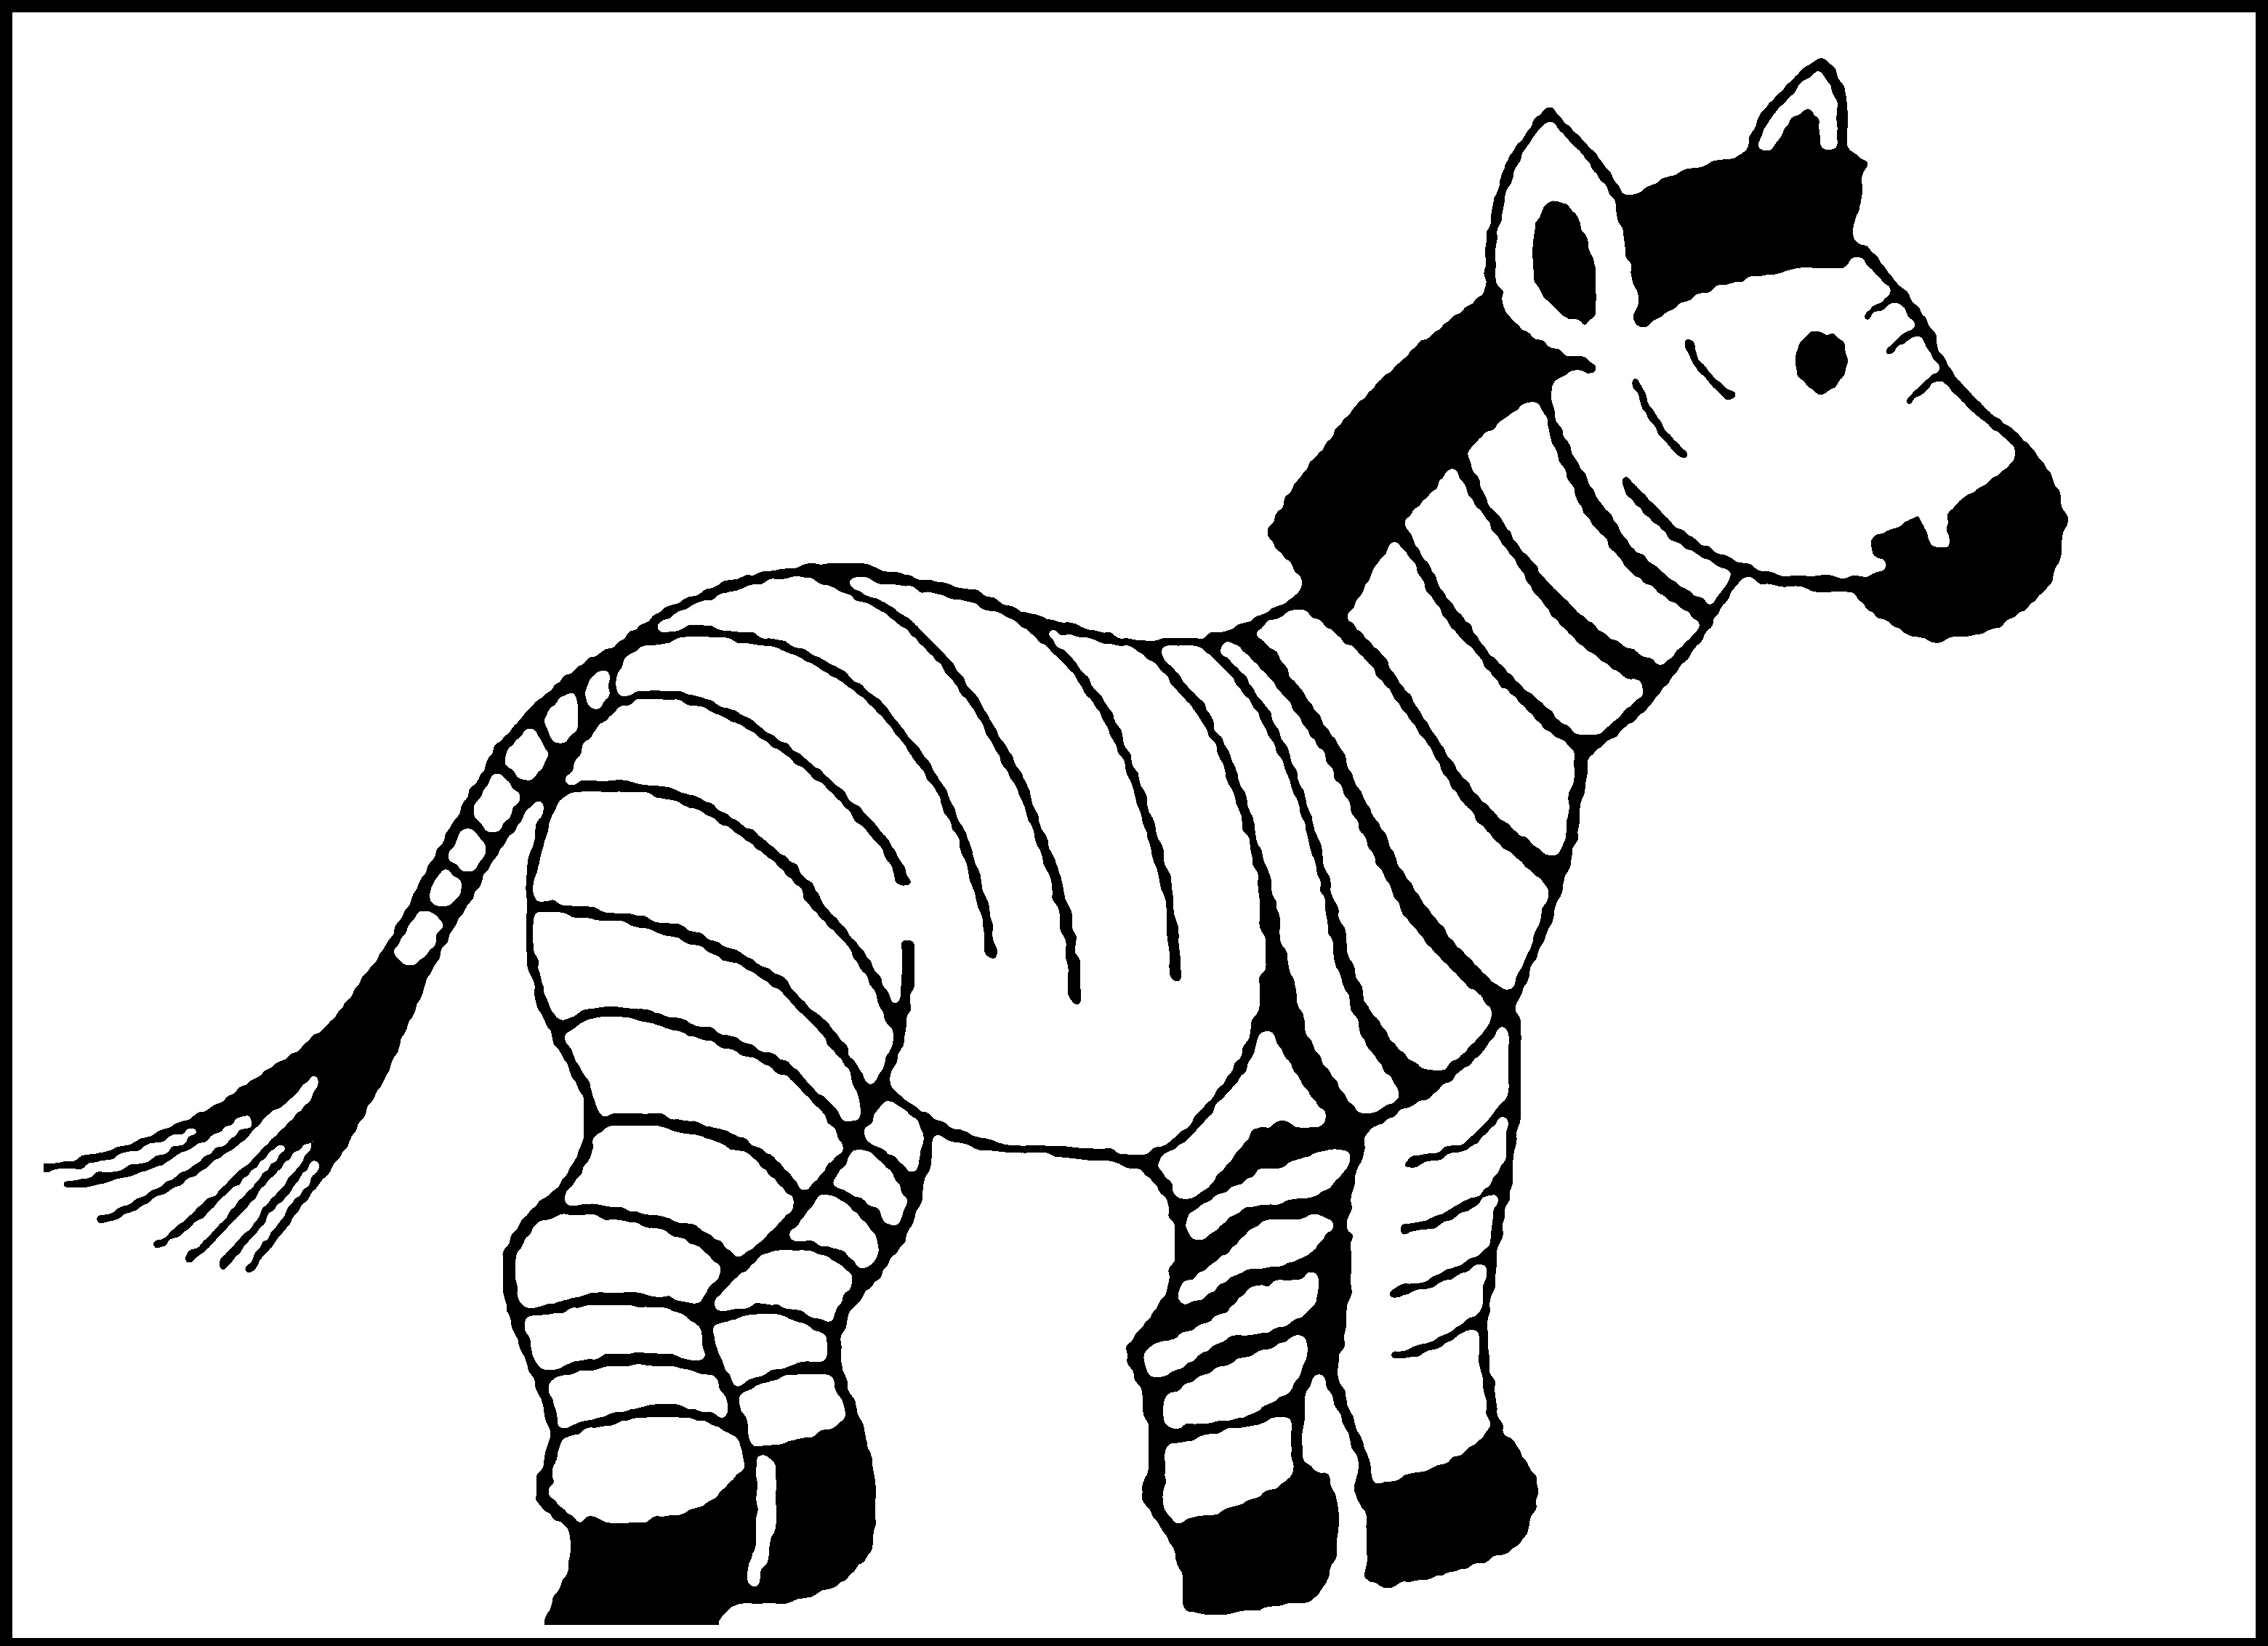 animal coloring pages free get this cute baby animal coloring pages to print 6fg7s animal free coloring pages